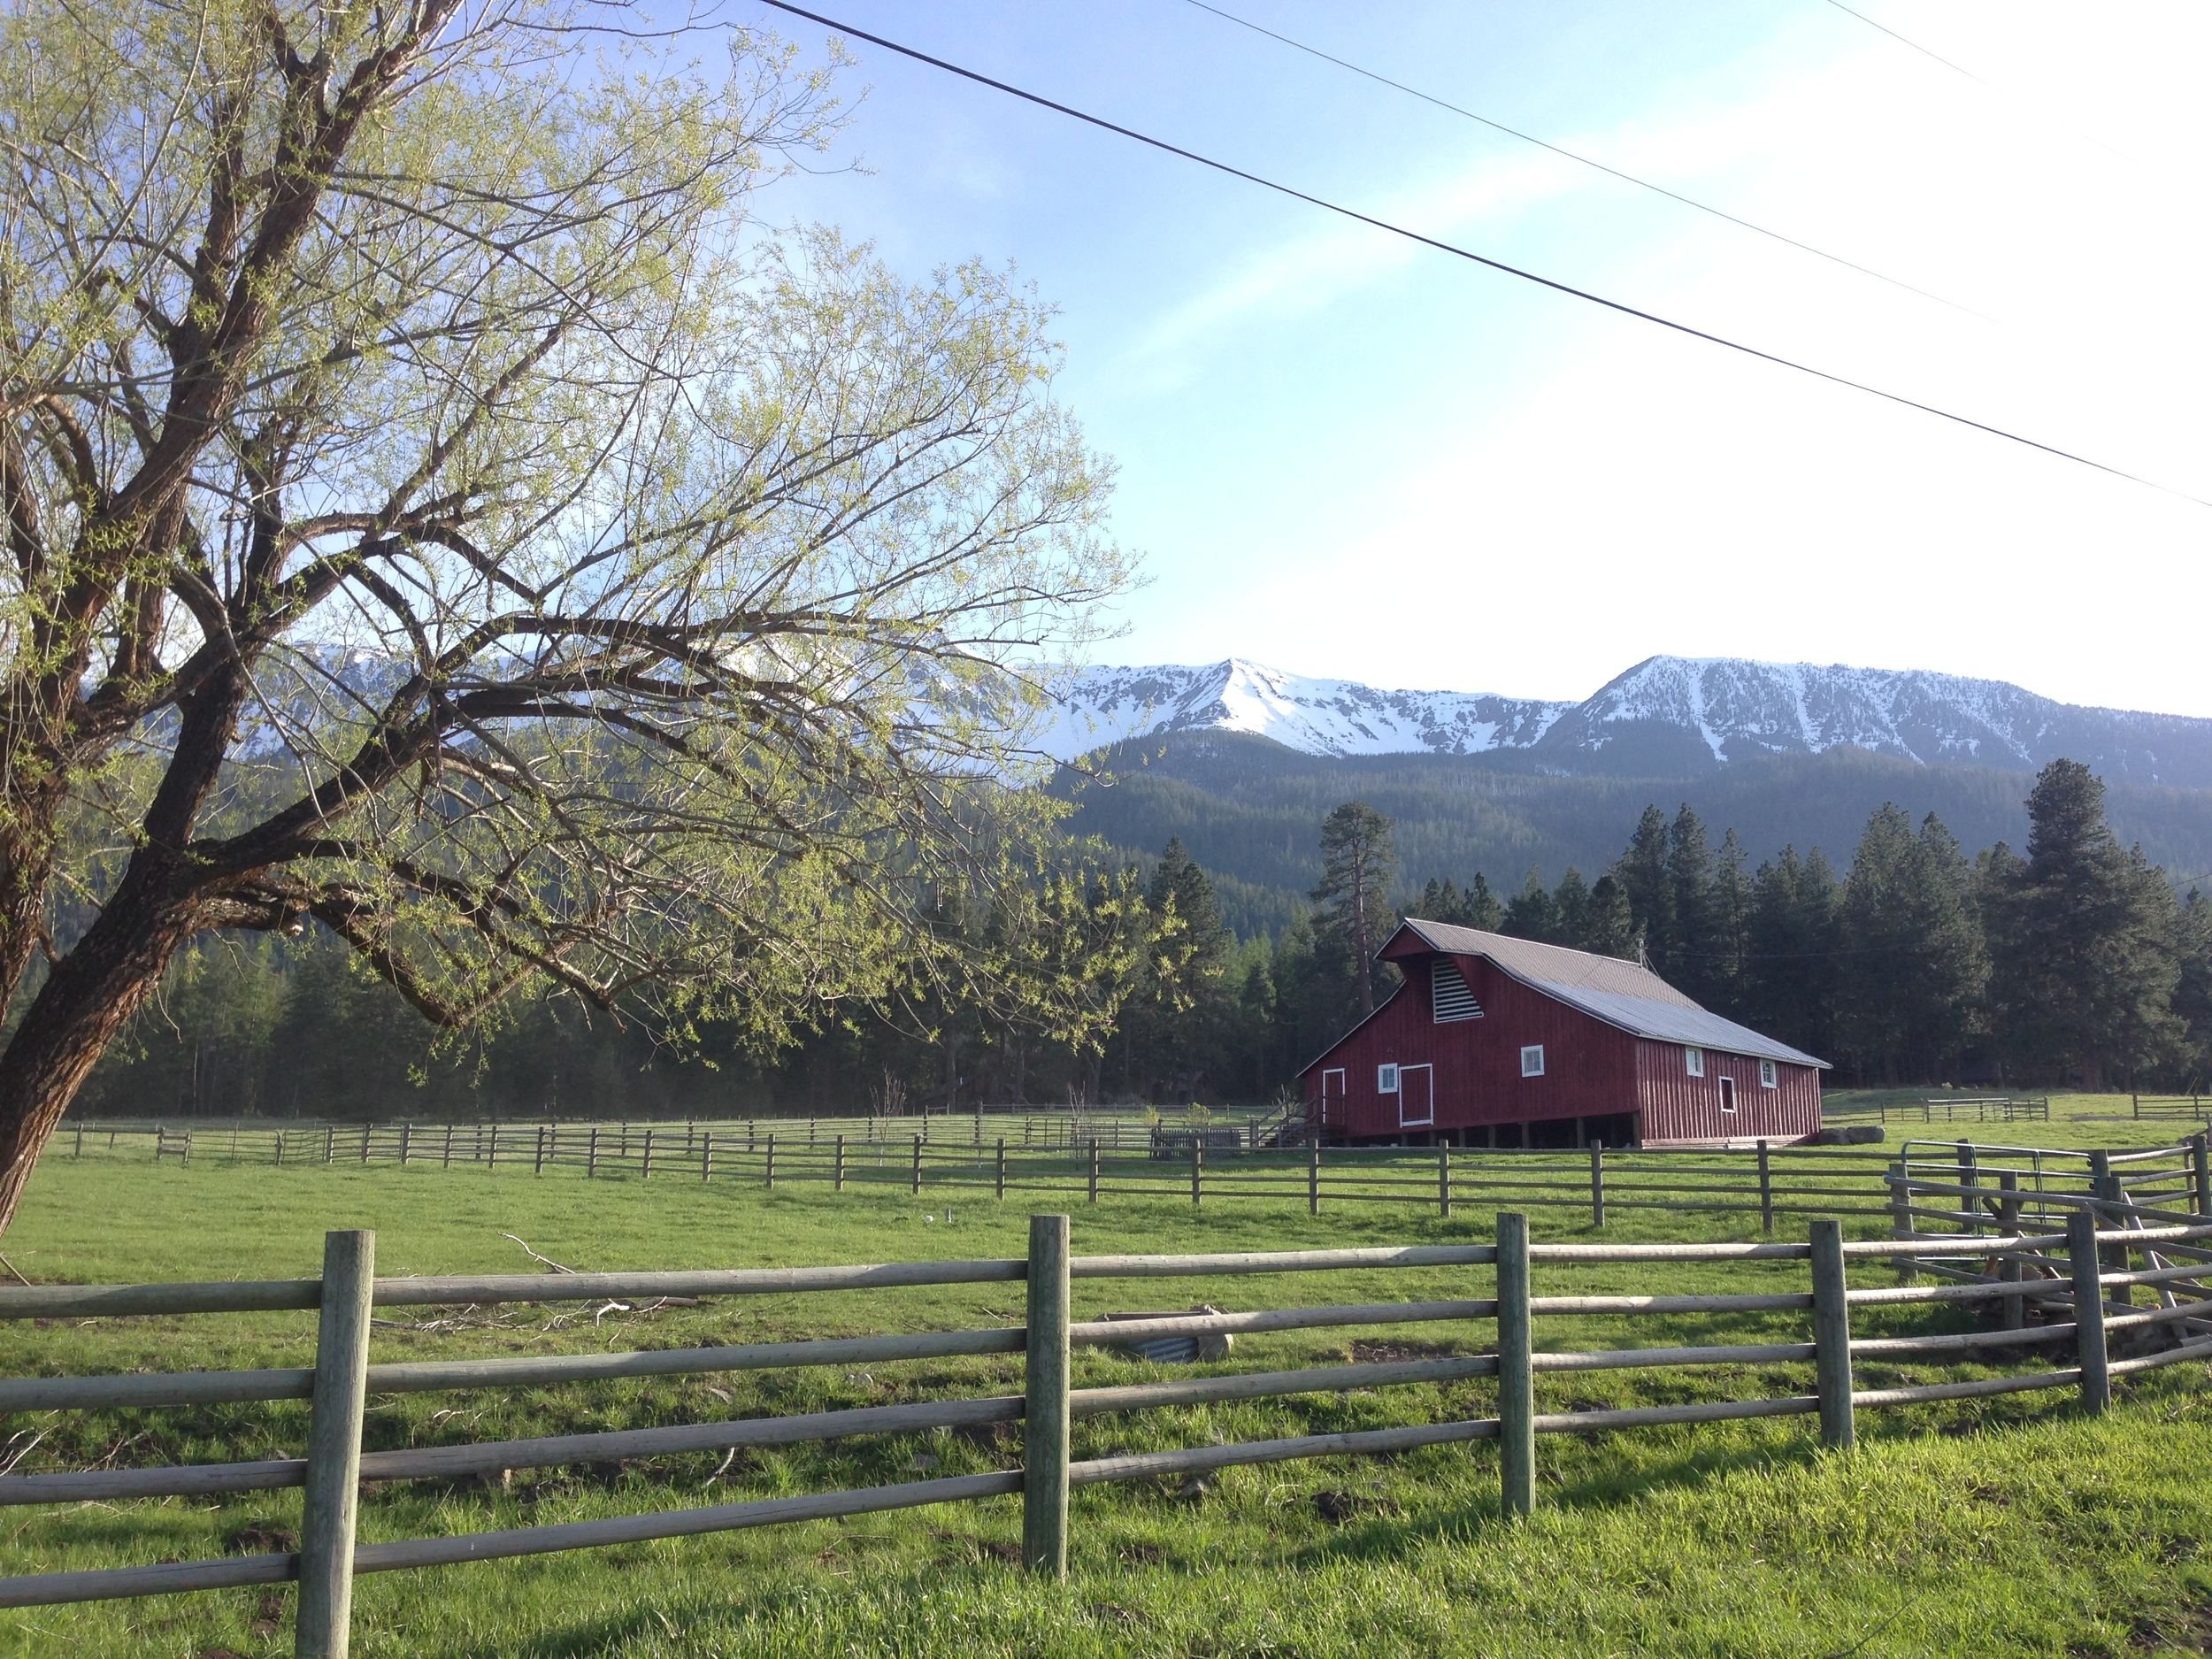 Cattle Ranch, Wallowa Mountains, Joseph, Oregon